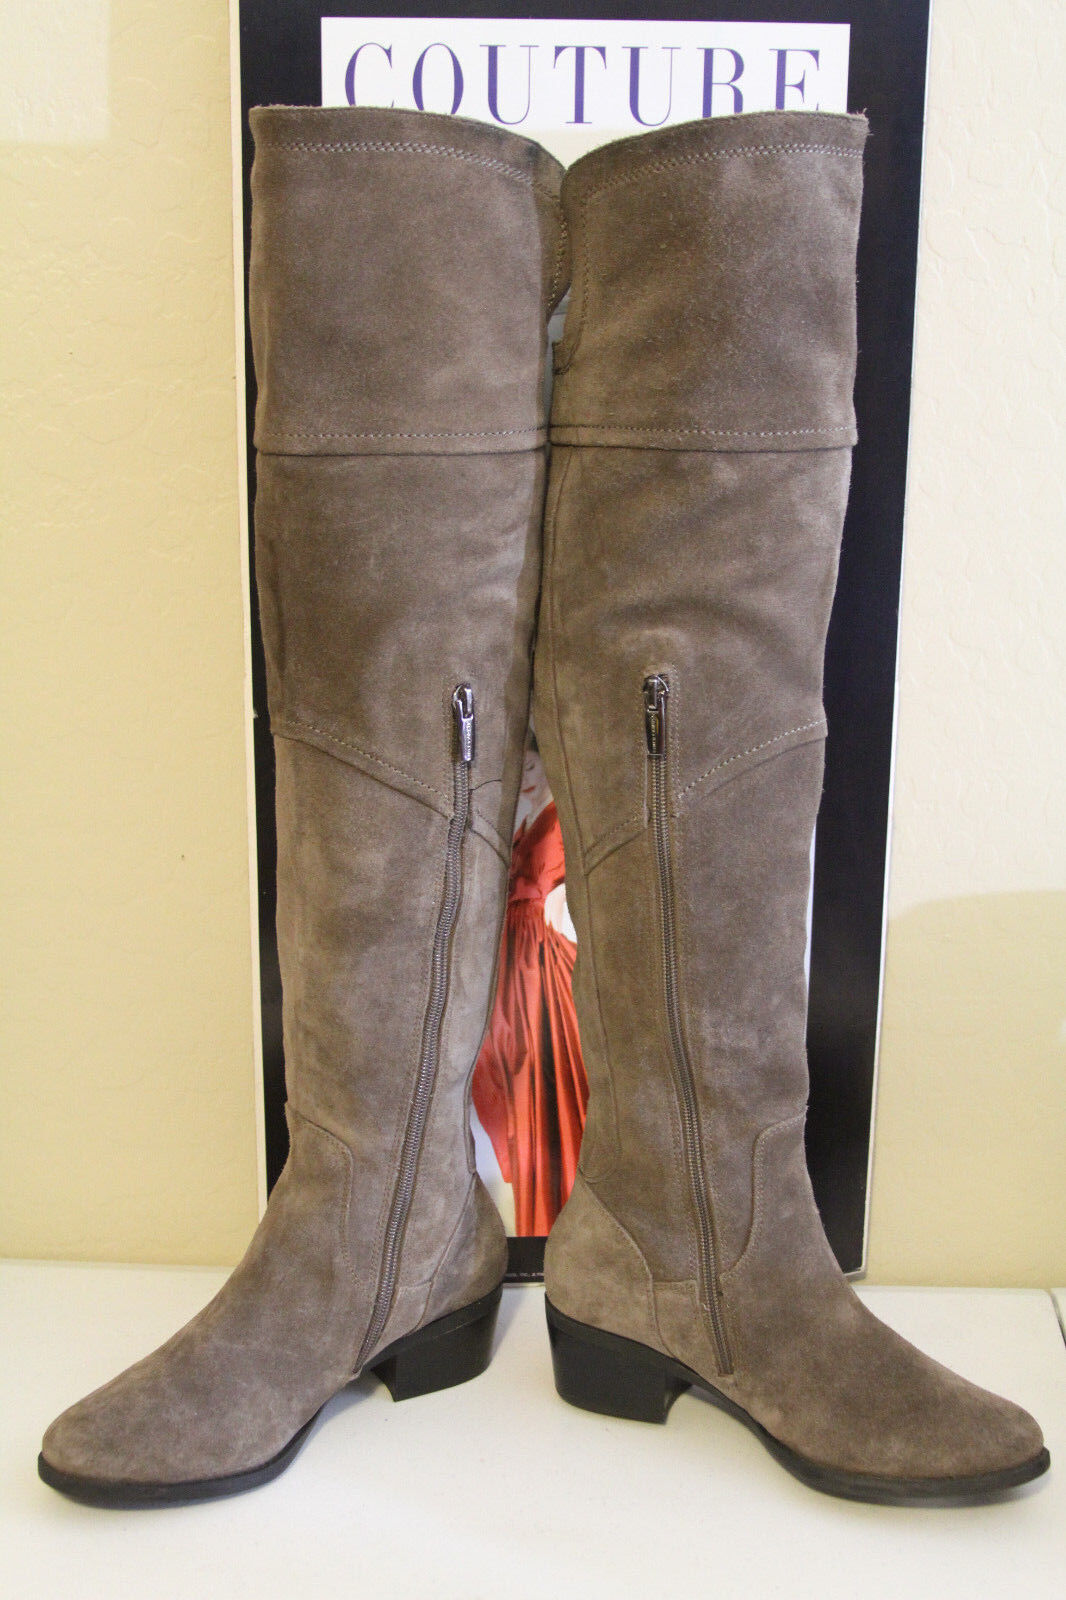 79 VINCE VINCE VINCE CAMUTO BRIELLA TAUPE SUEDE OVER THE KNEE BOOTS  SZ 5.5  MSRP 198 68bde6